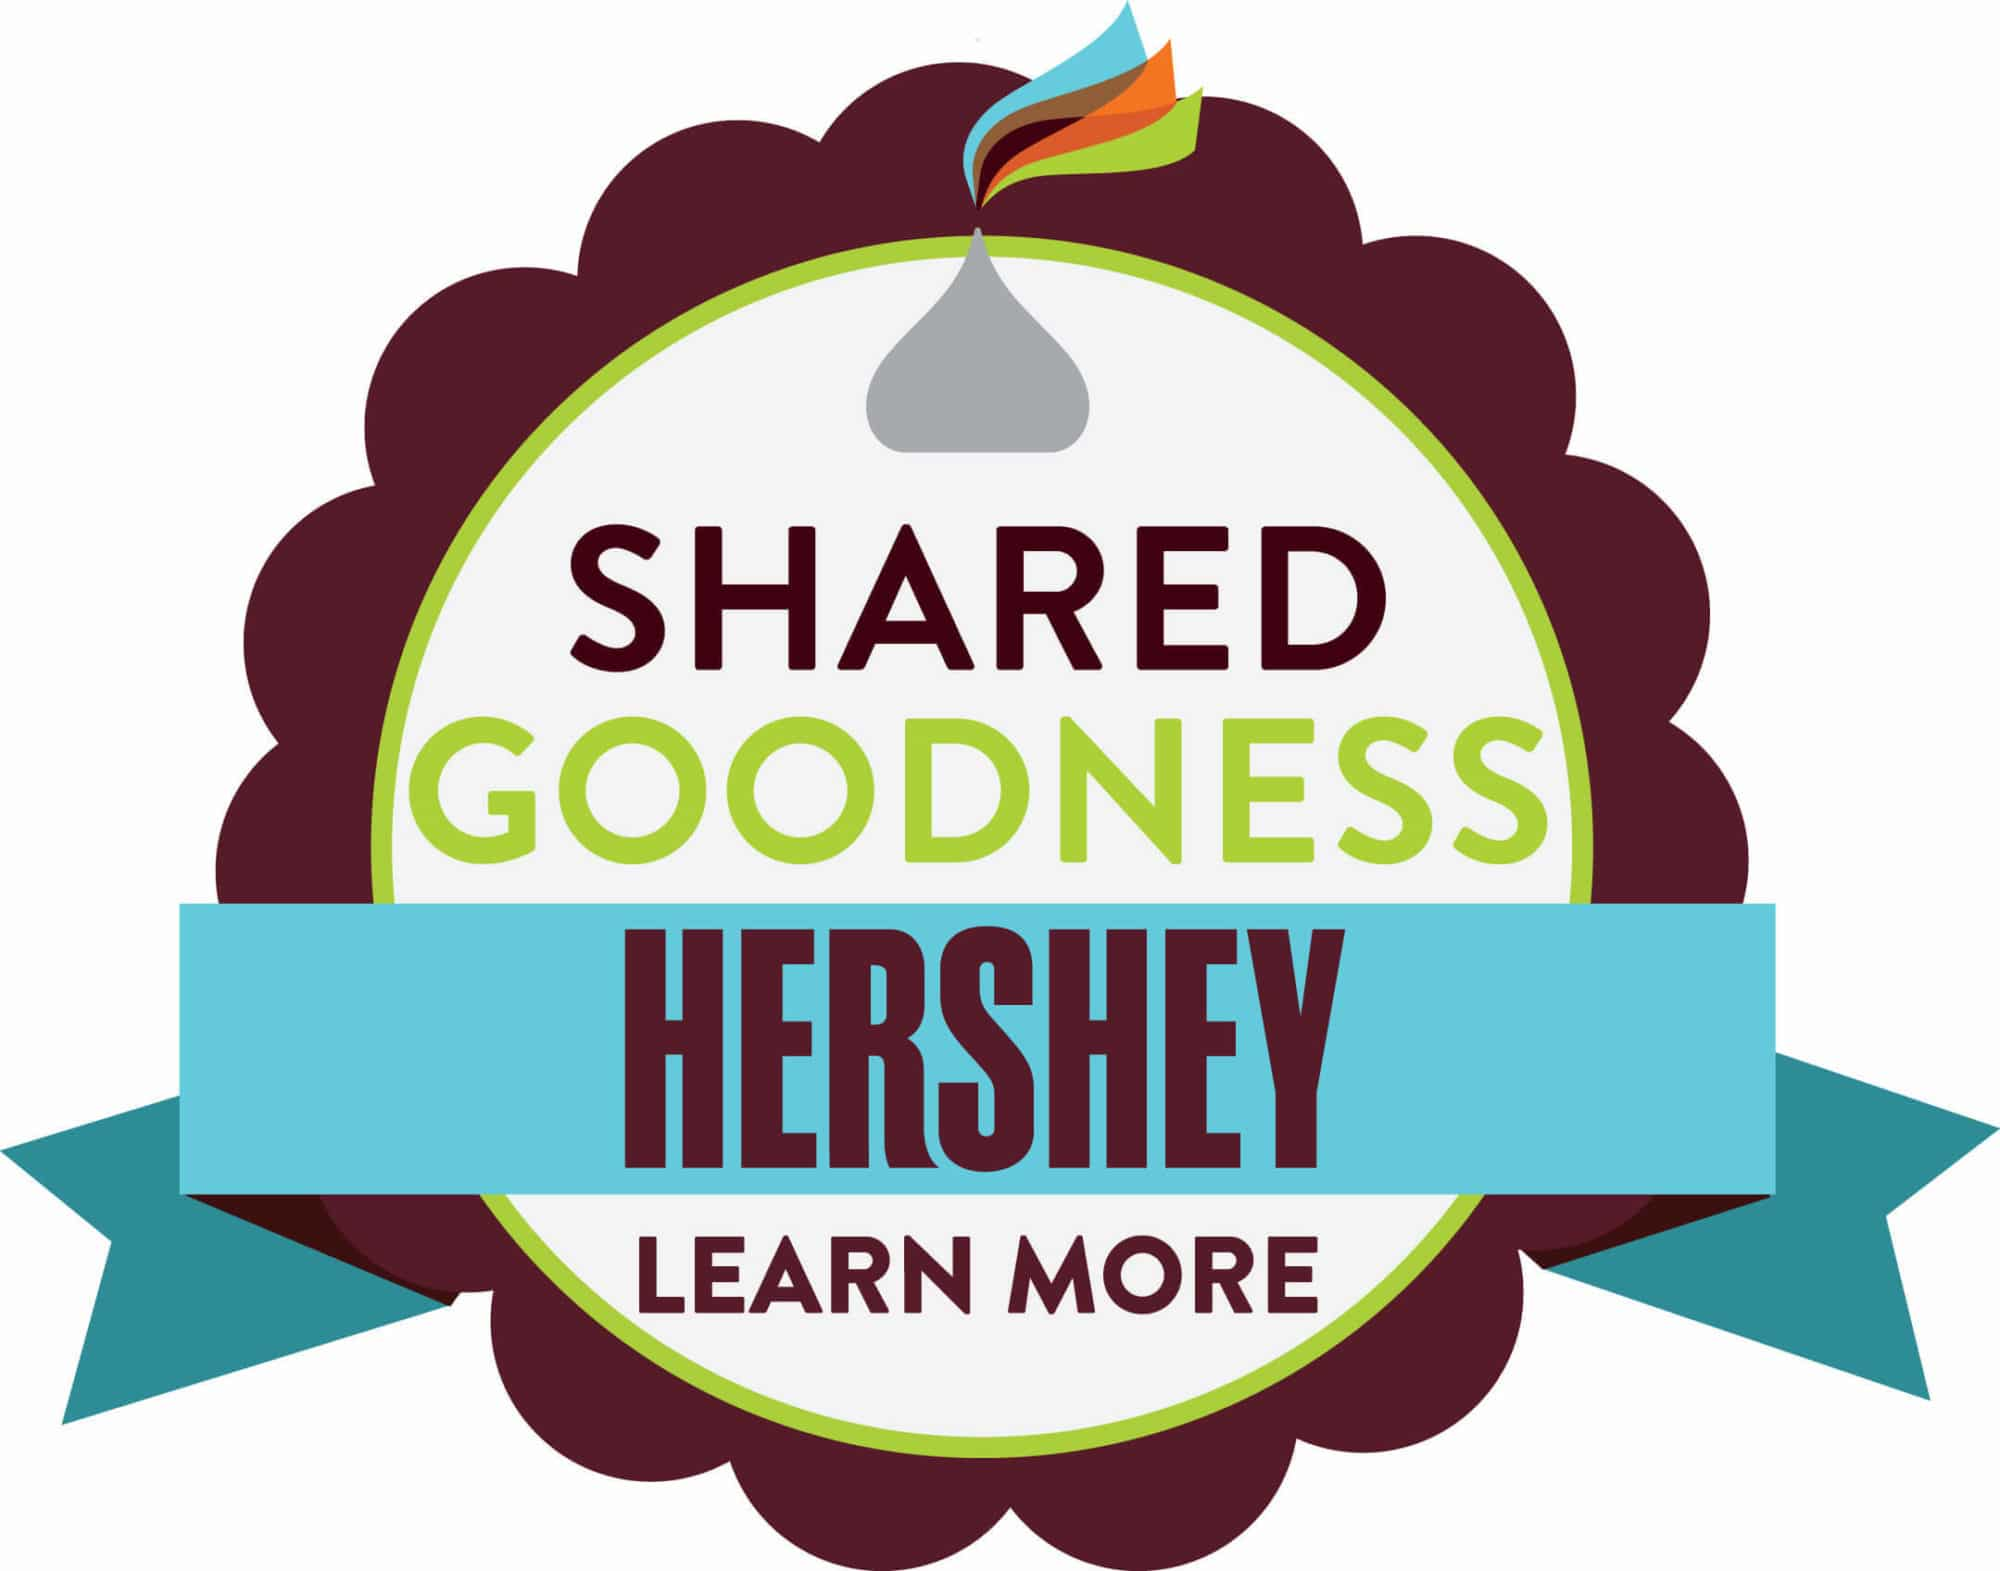 Hershey's Shared Goodness